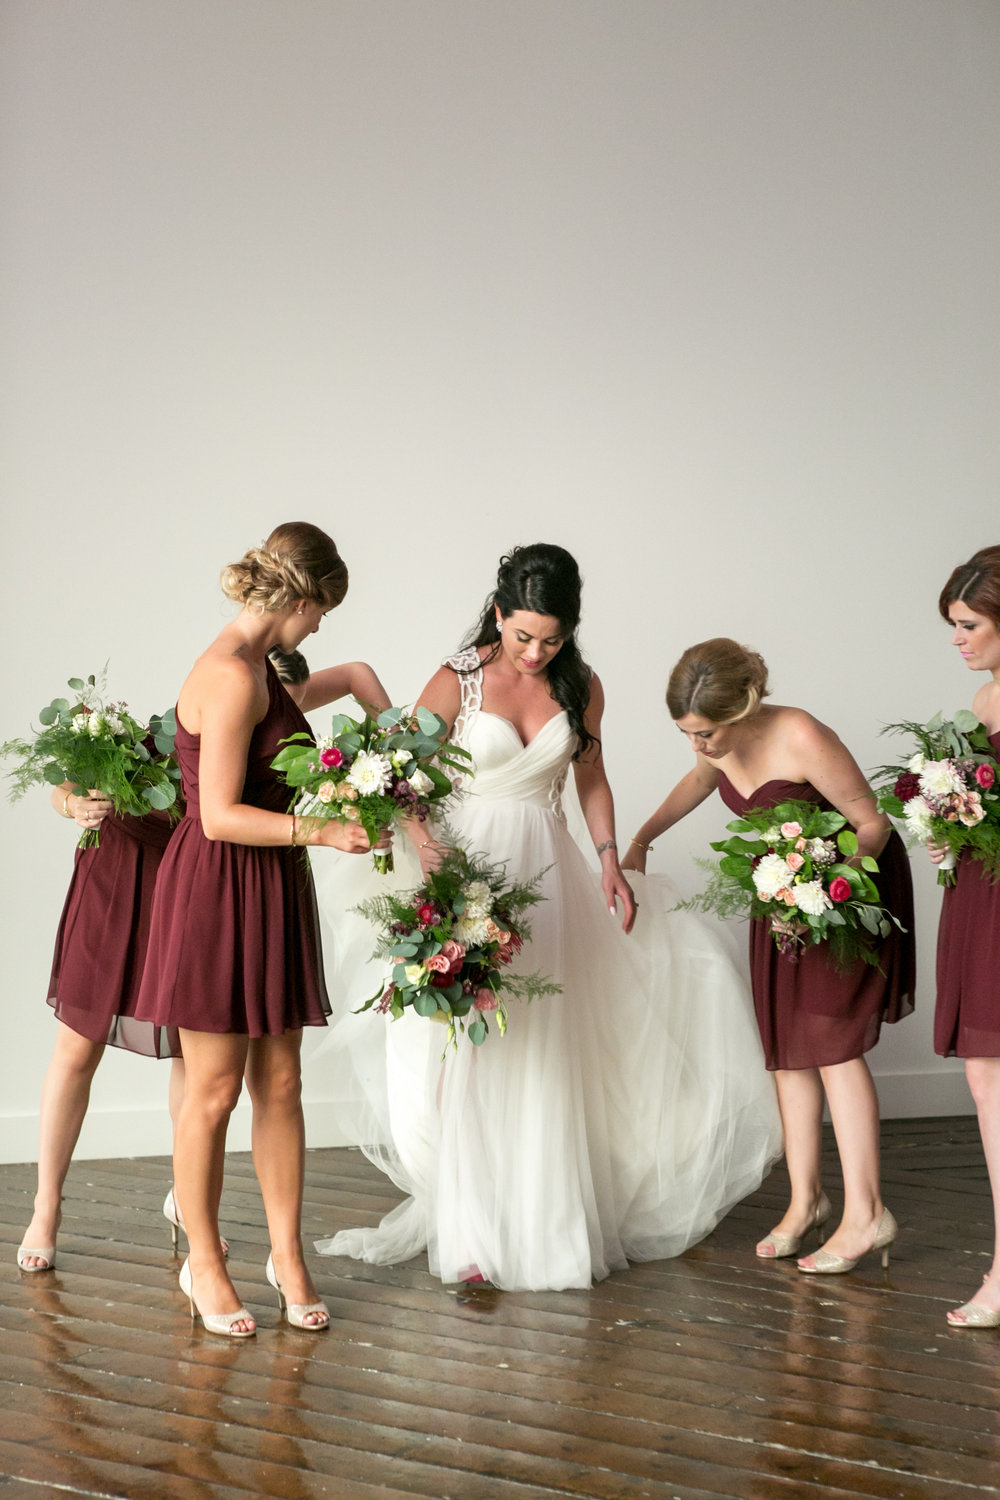 Toronto Wedding Feature: Beautiful Country Garden Celebration at the ...